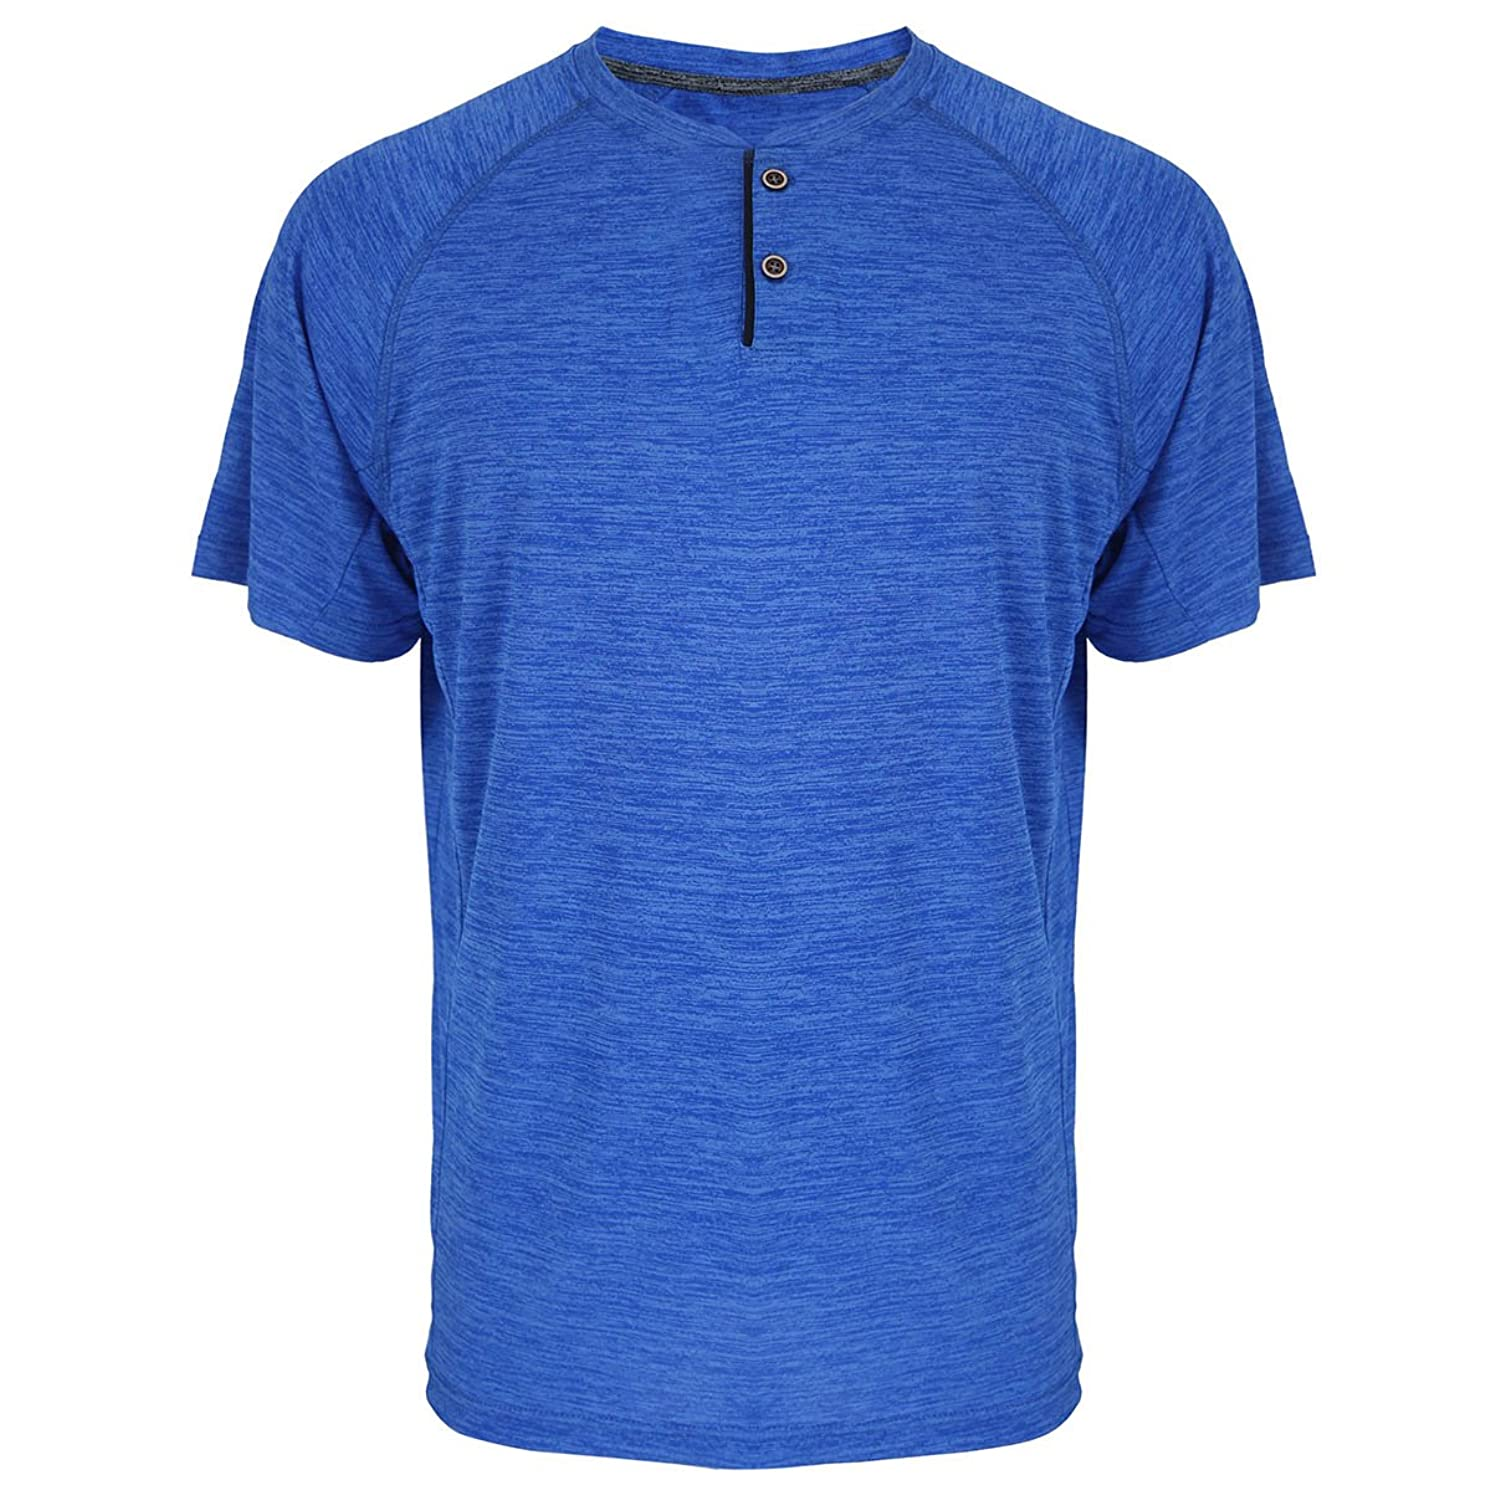 Sports T-Shirts for Men Quick Dry Wicking Workout Athletic Running Training Tee Active Tops Sportswear